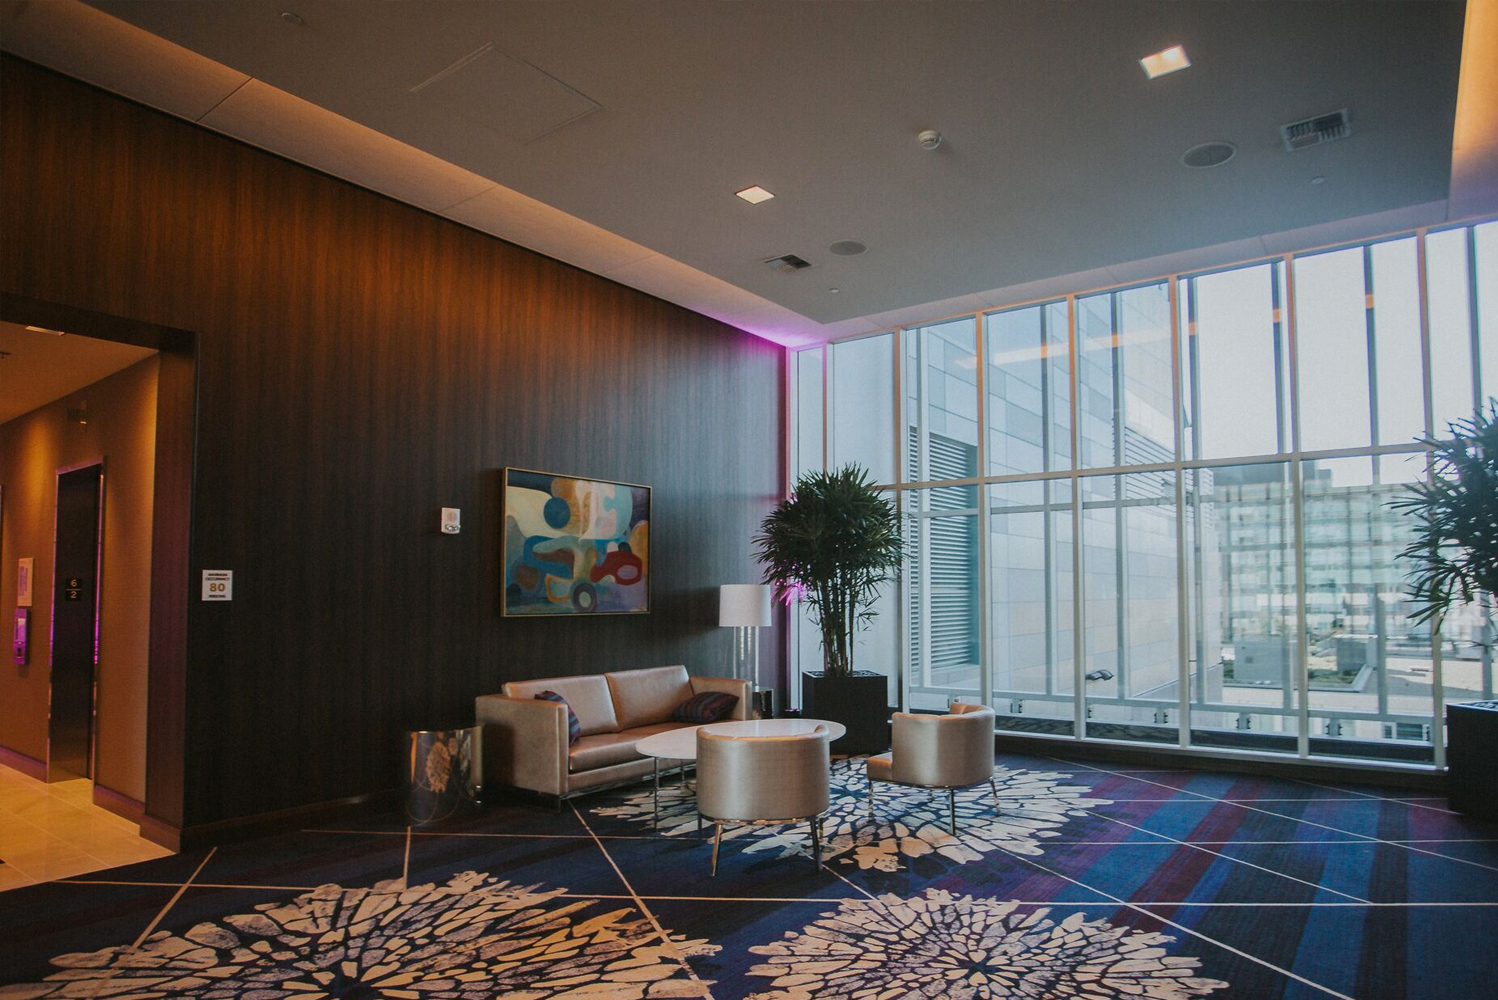 Involved in the design of the property was Degen & Degen. Photo credit: Jenna Lynn Photography, courtesy of Embassy Suites by Hilton Seattle Downtown Pioneer Square